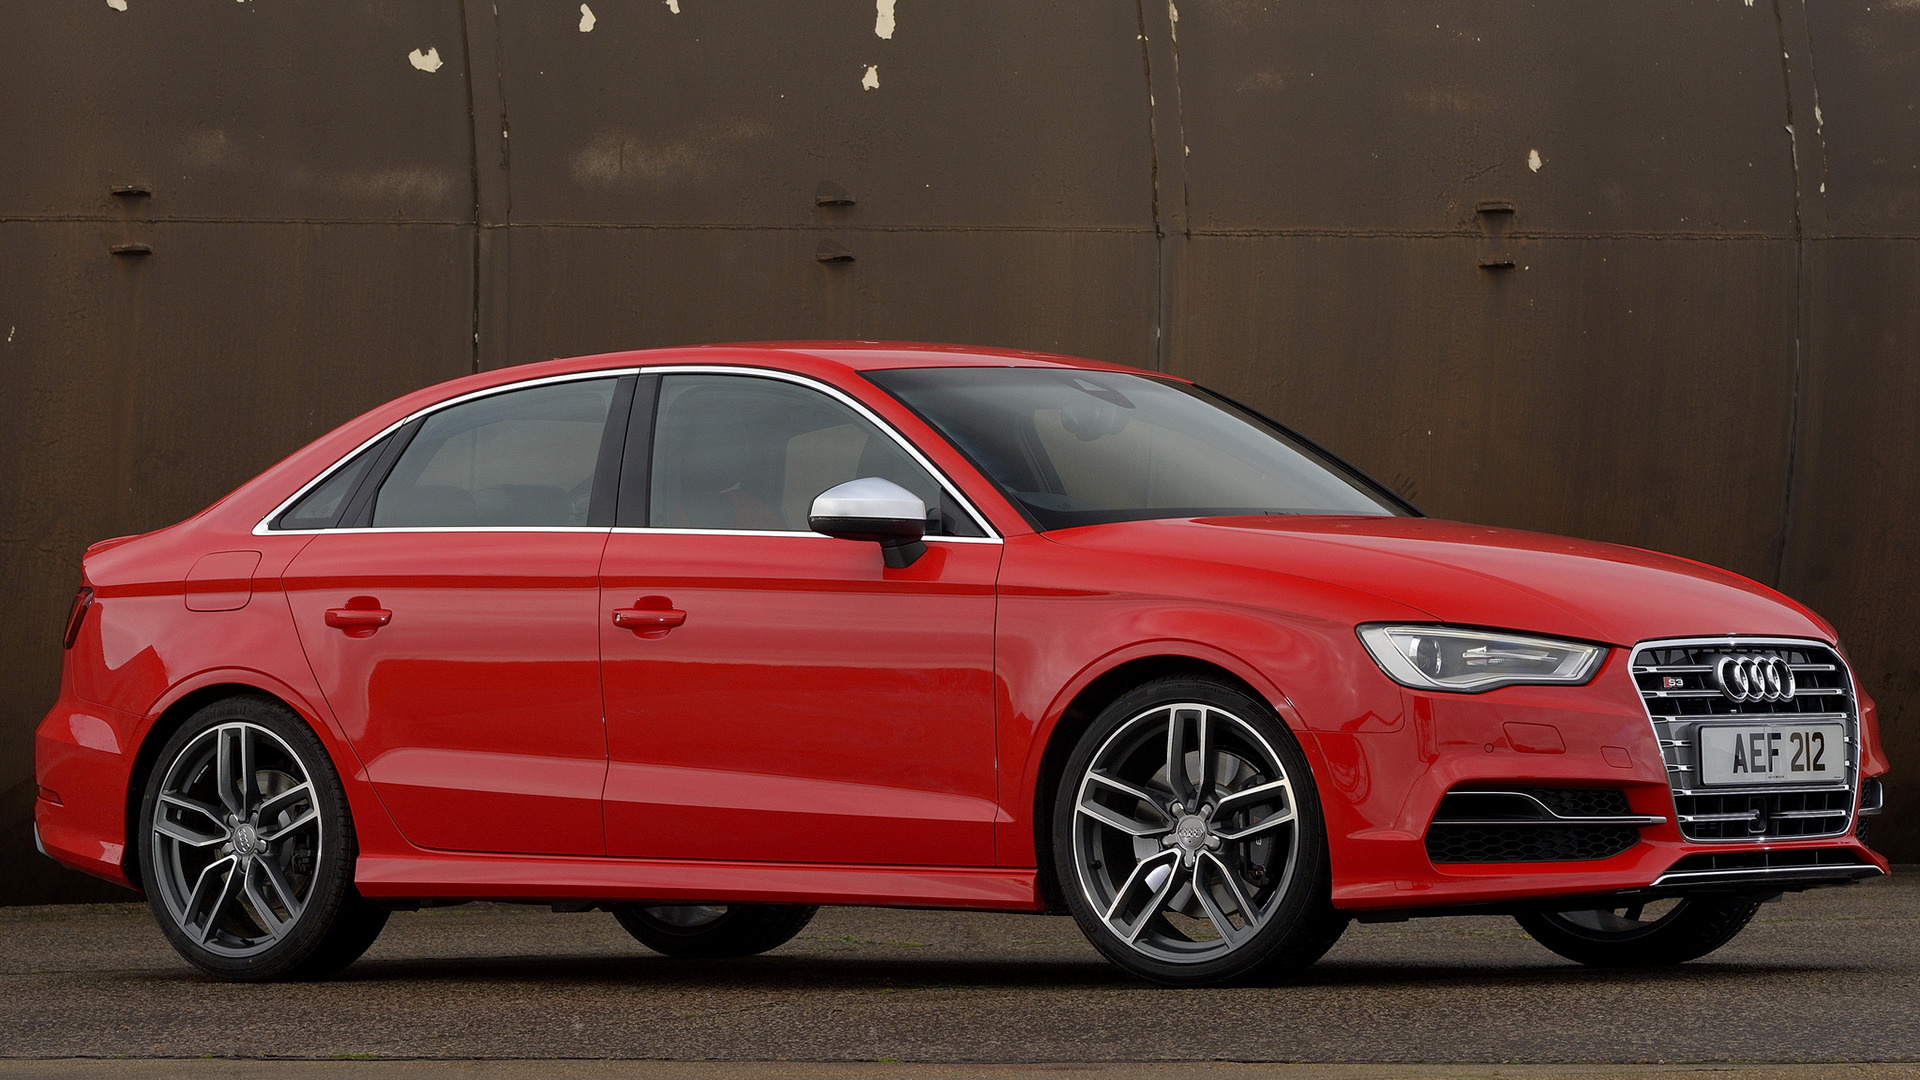 2013 audi s3 saloon uk wallpapers and hd images car pixel. Black Bedroom Furniture Sets. Home Design Ideas